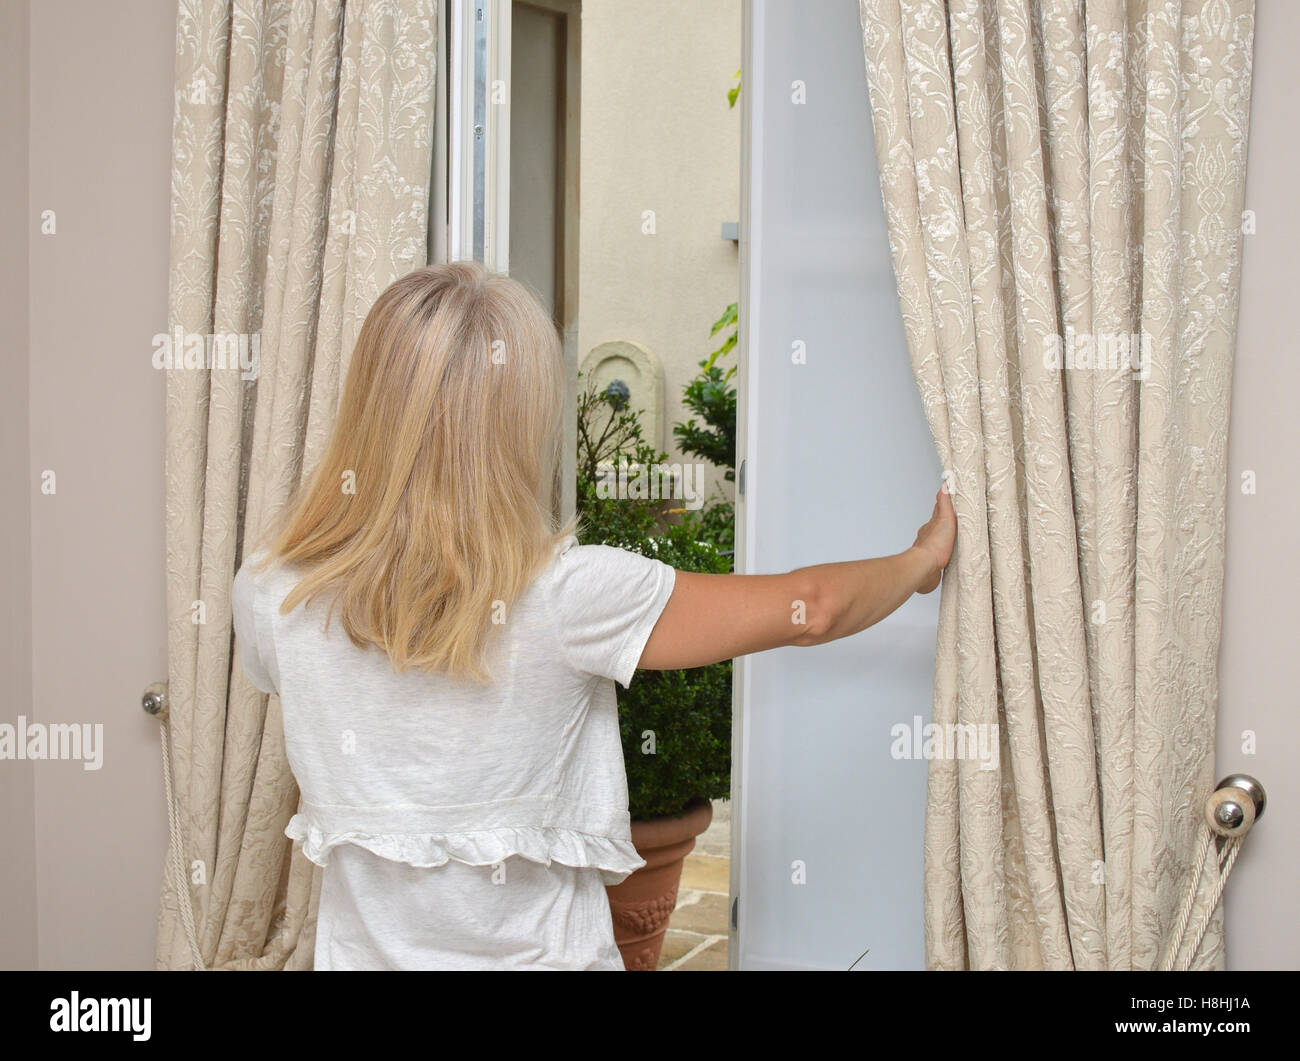 Lady In Cozy Home Wear Moving Curtains And Opening Bedroom Window Stock Photo Alamy